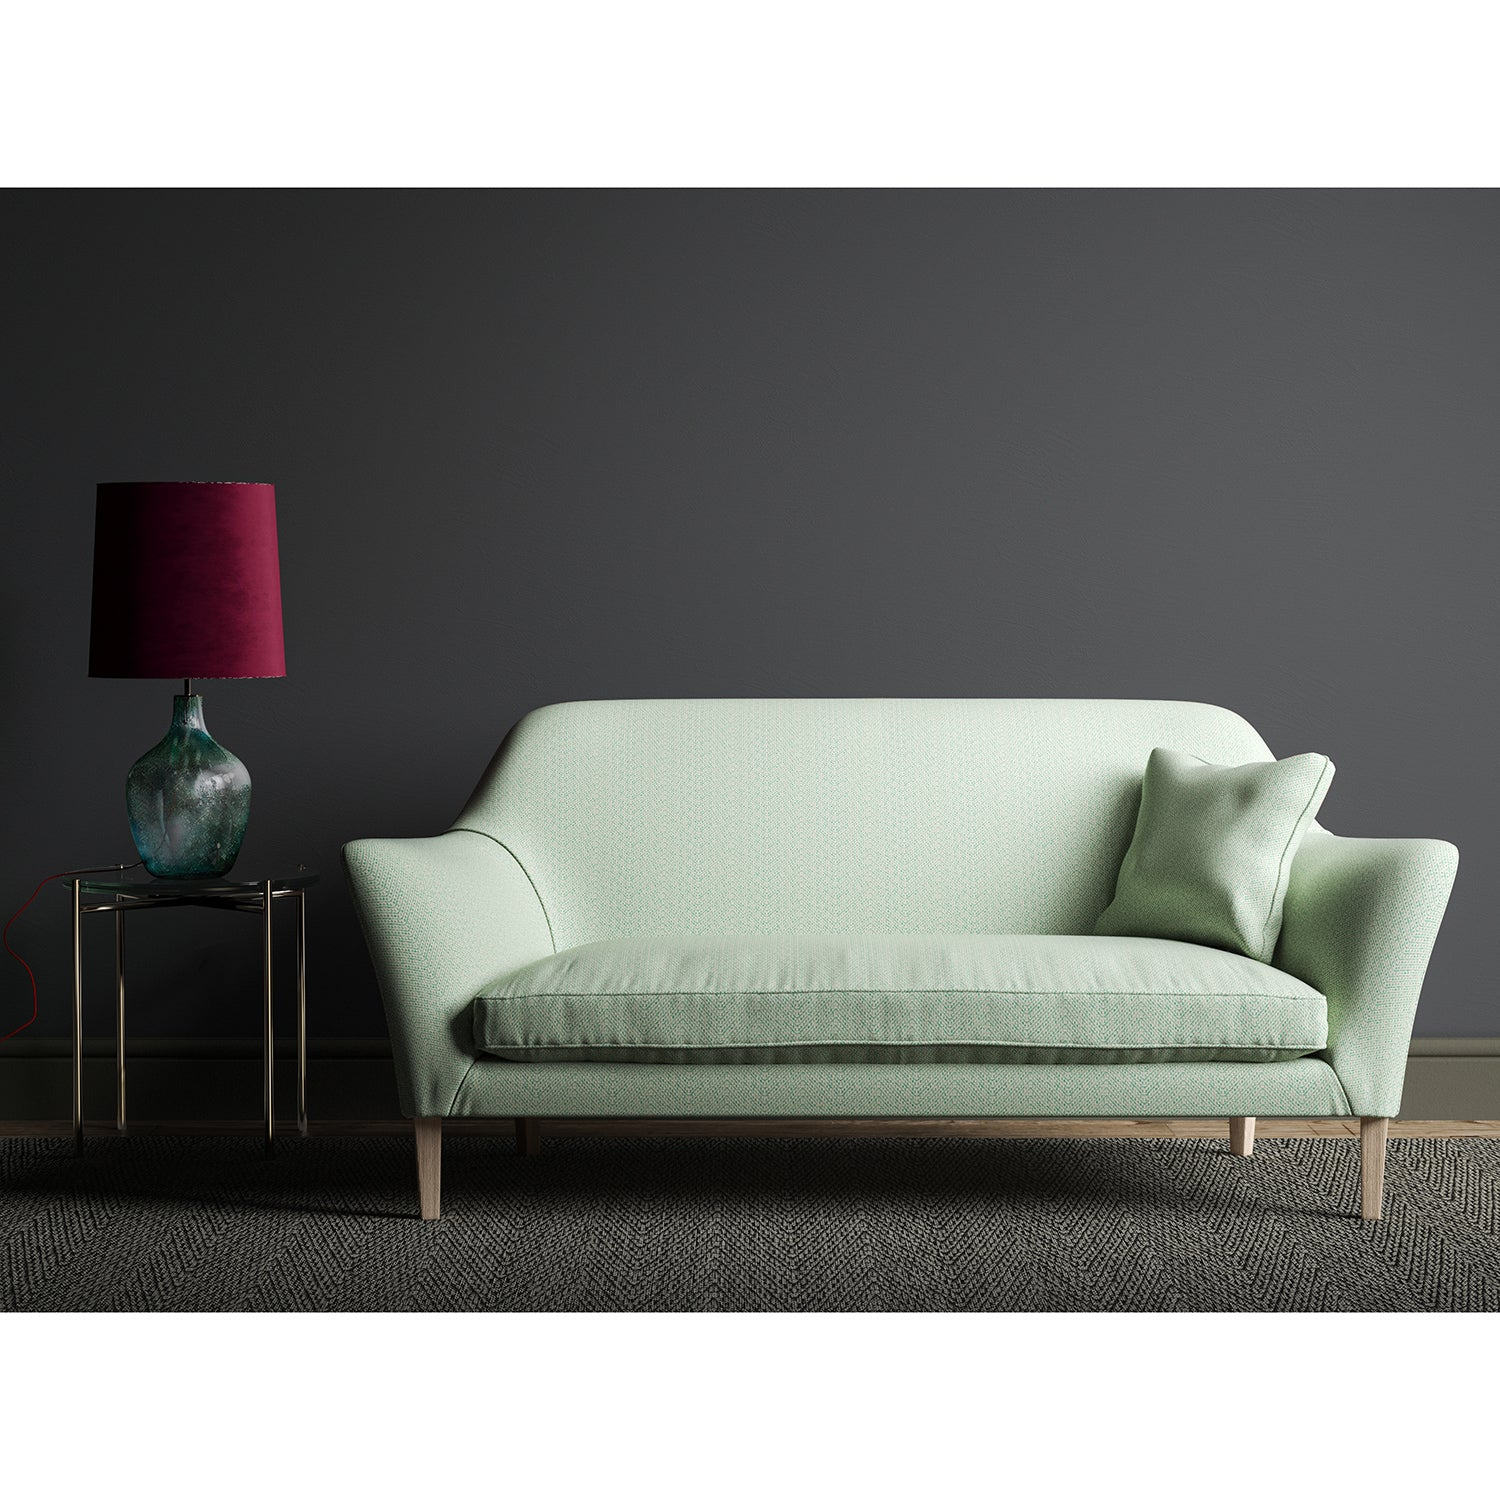 Sofa upholstered in a turquoise and white geometric weave fabric.